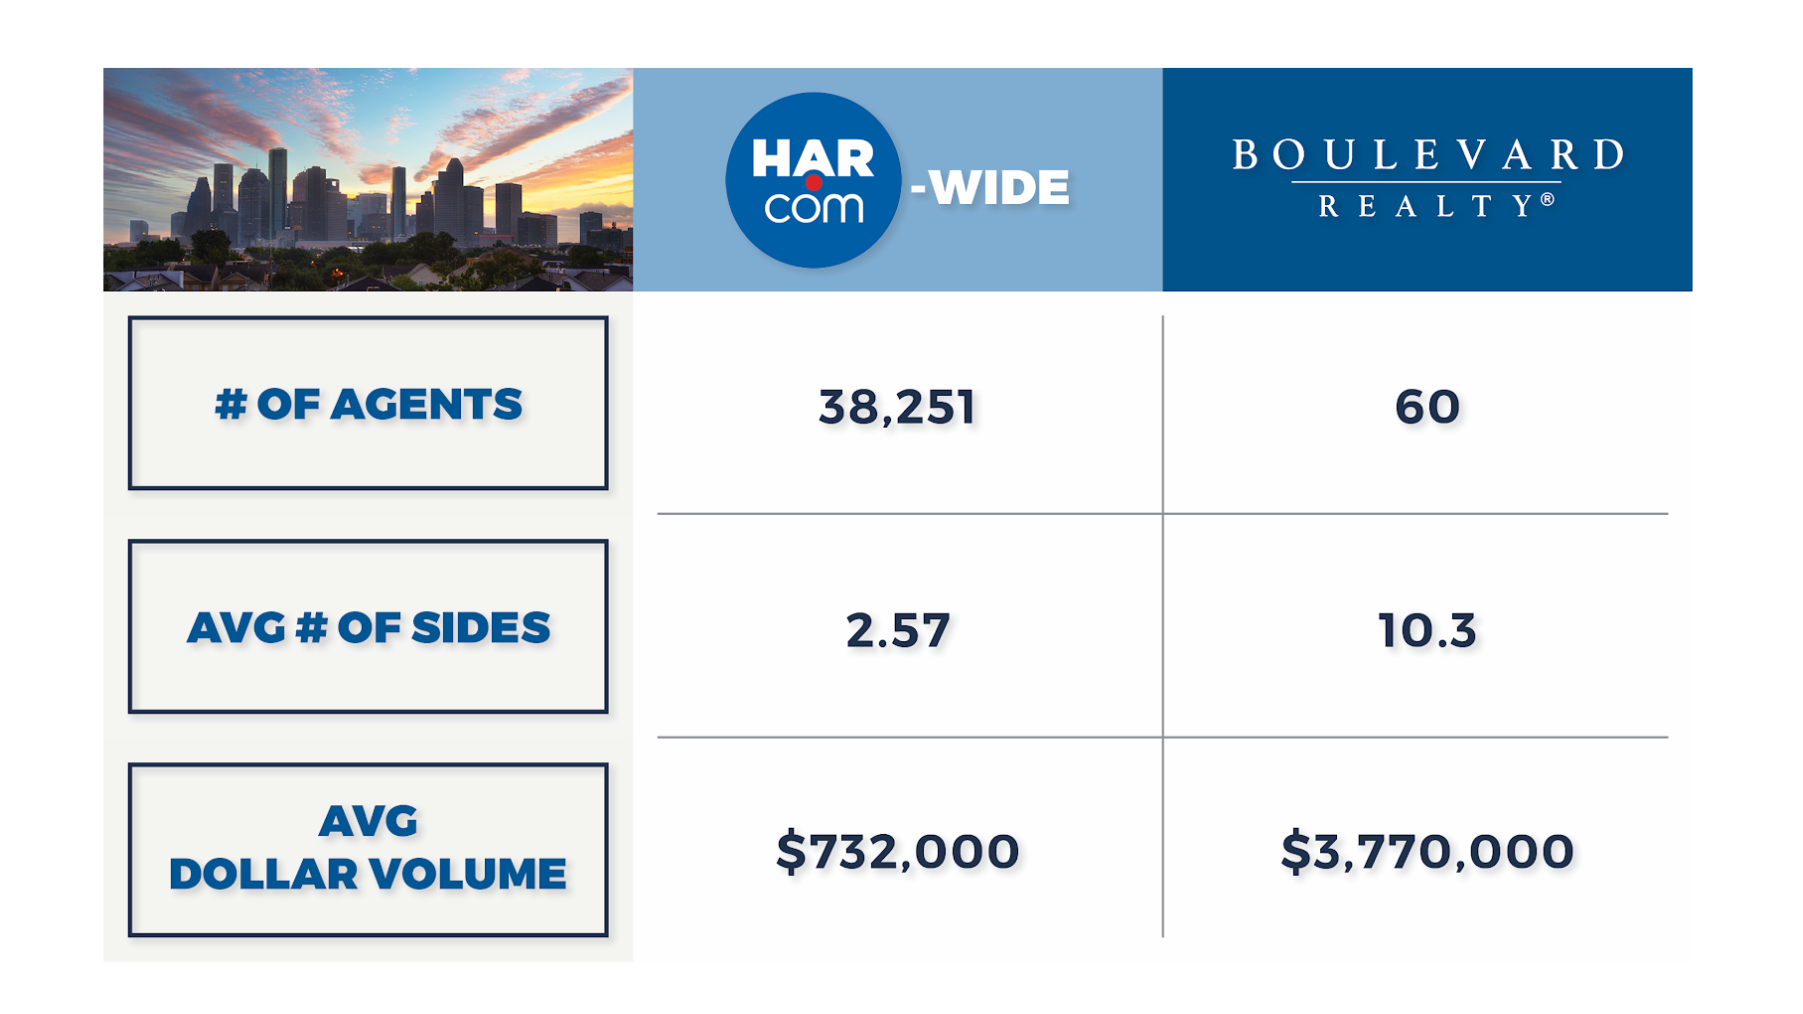 Boulevard Realty agents conduct more real estate transactions at a higher volume than the average Houston-area Realtor.